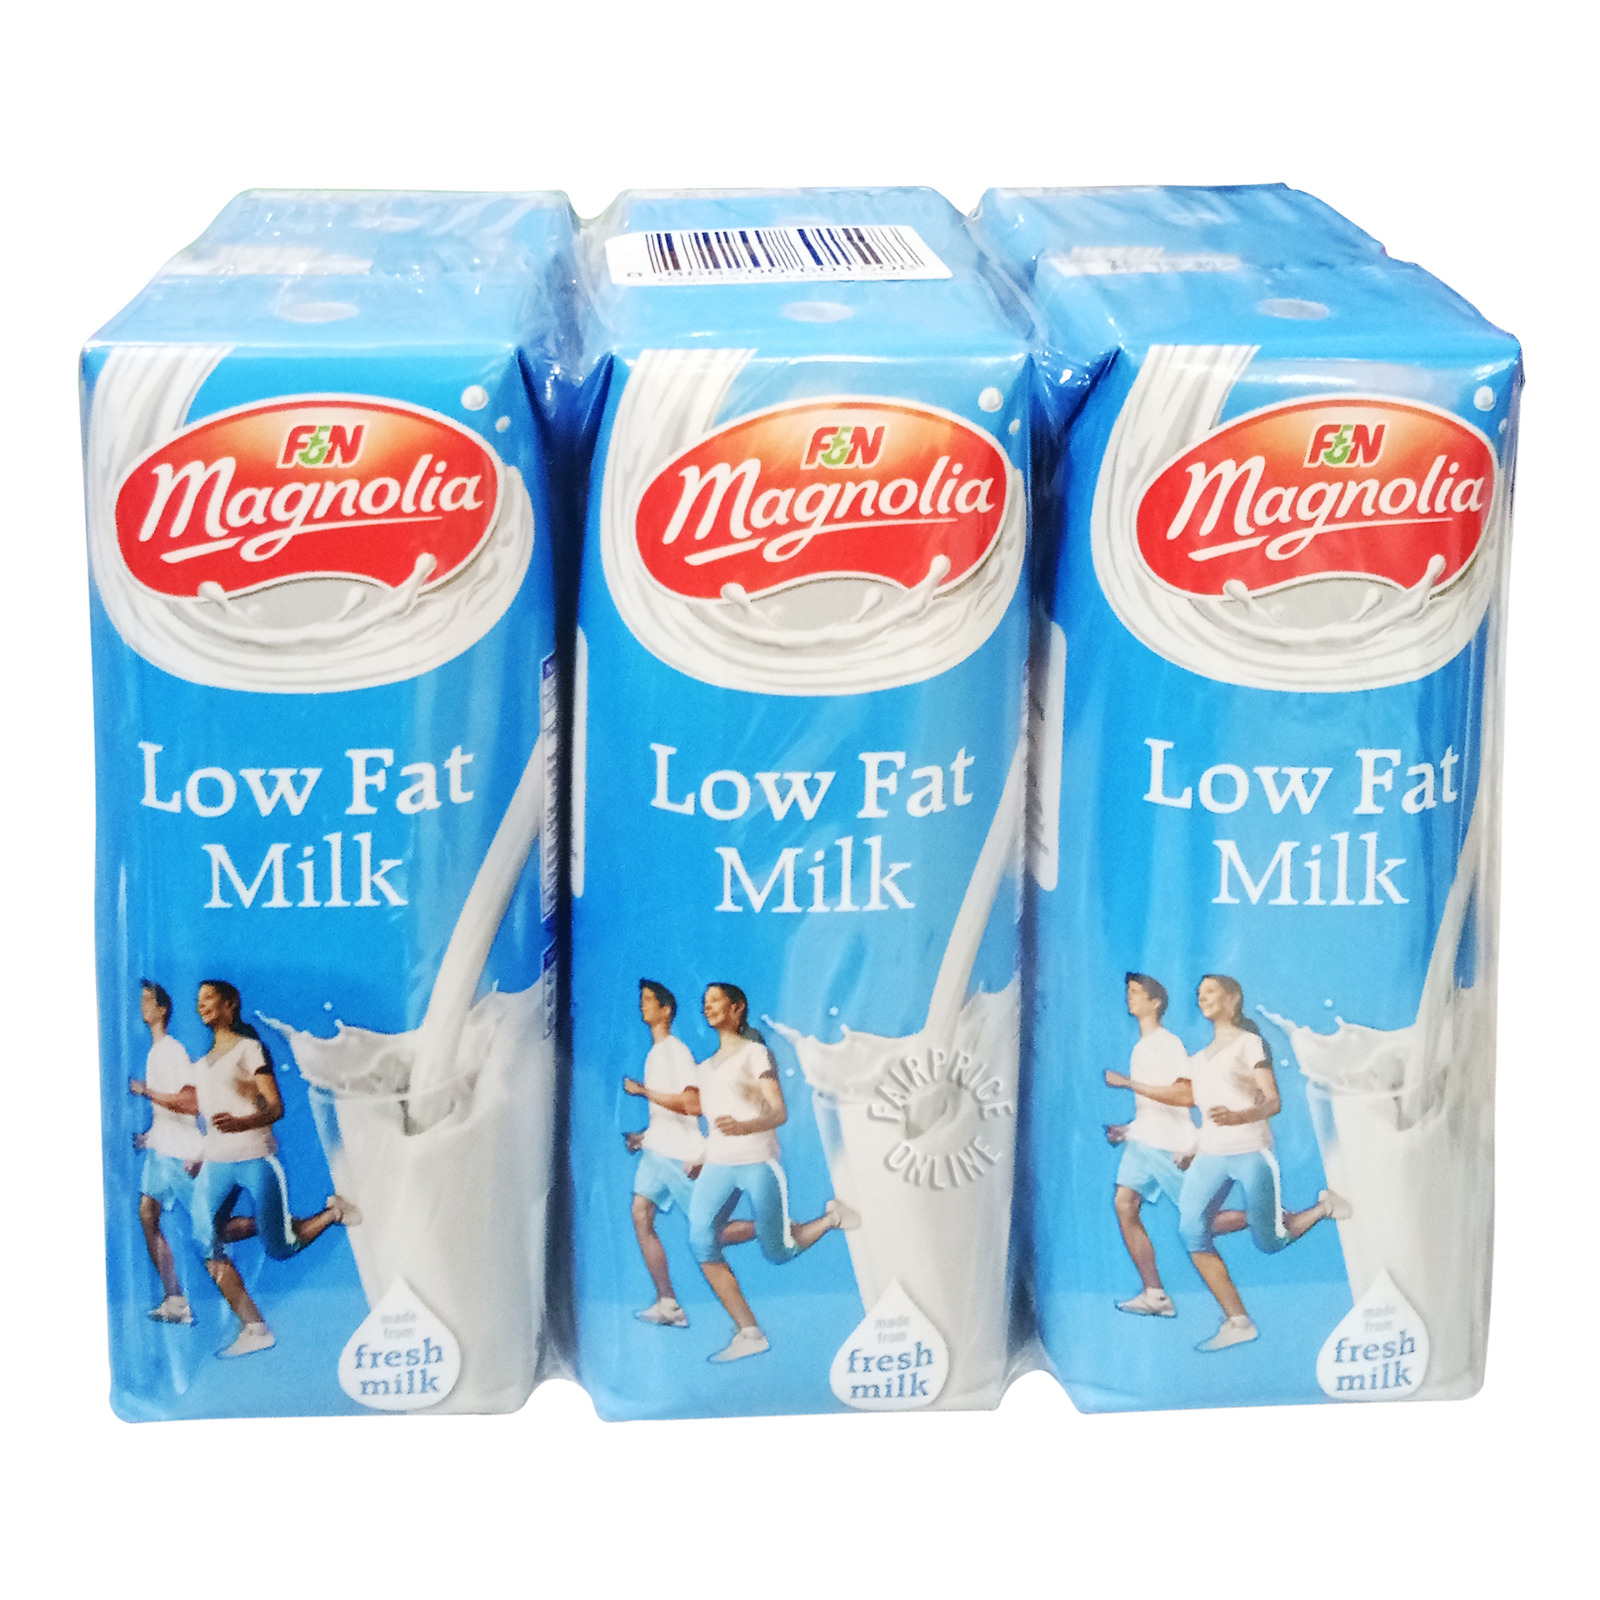 F&N Magnolia UHT Packet Milk - Calcium